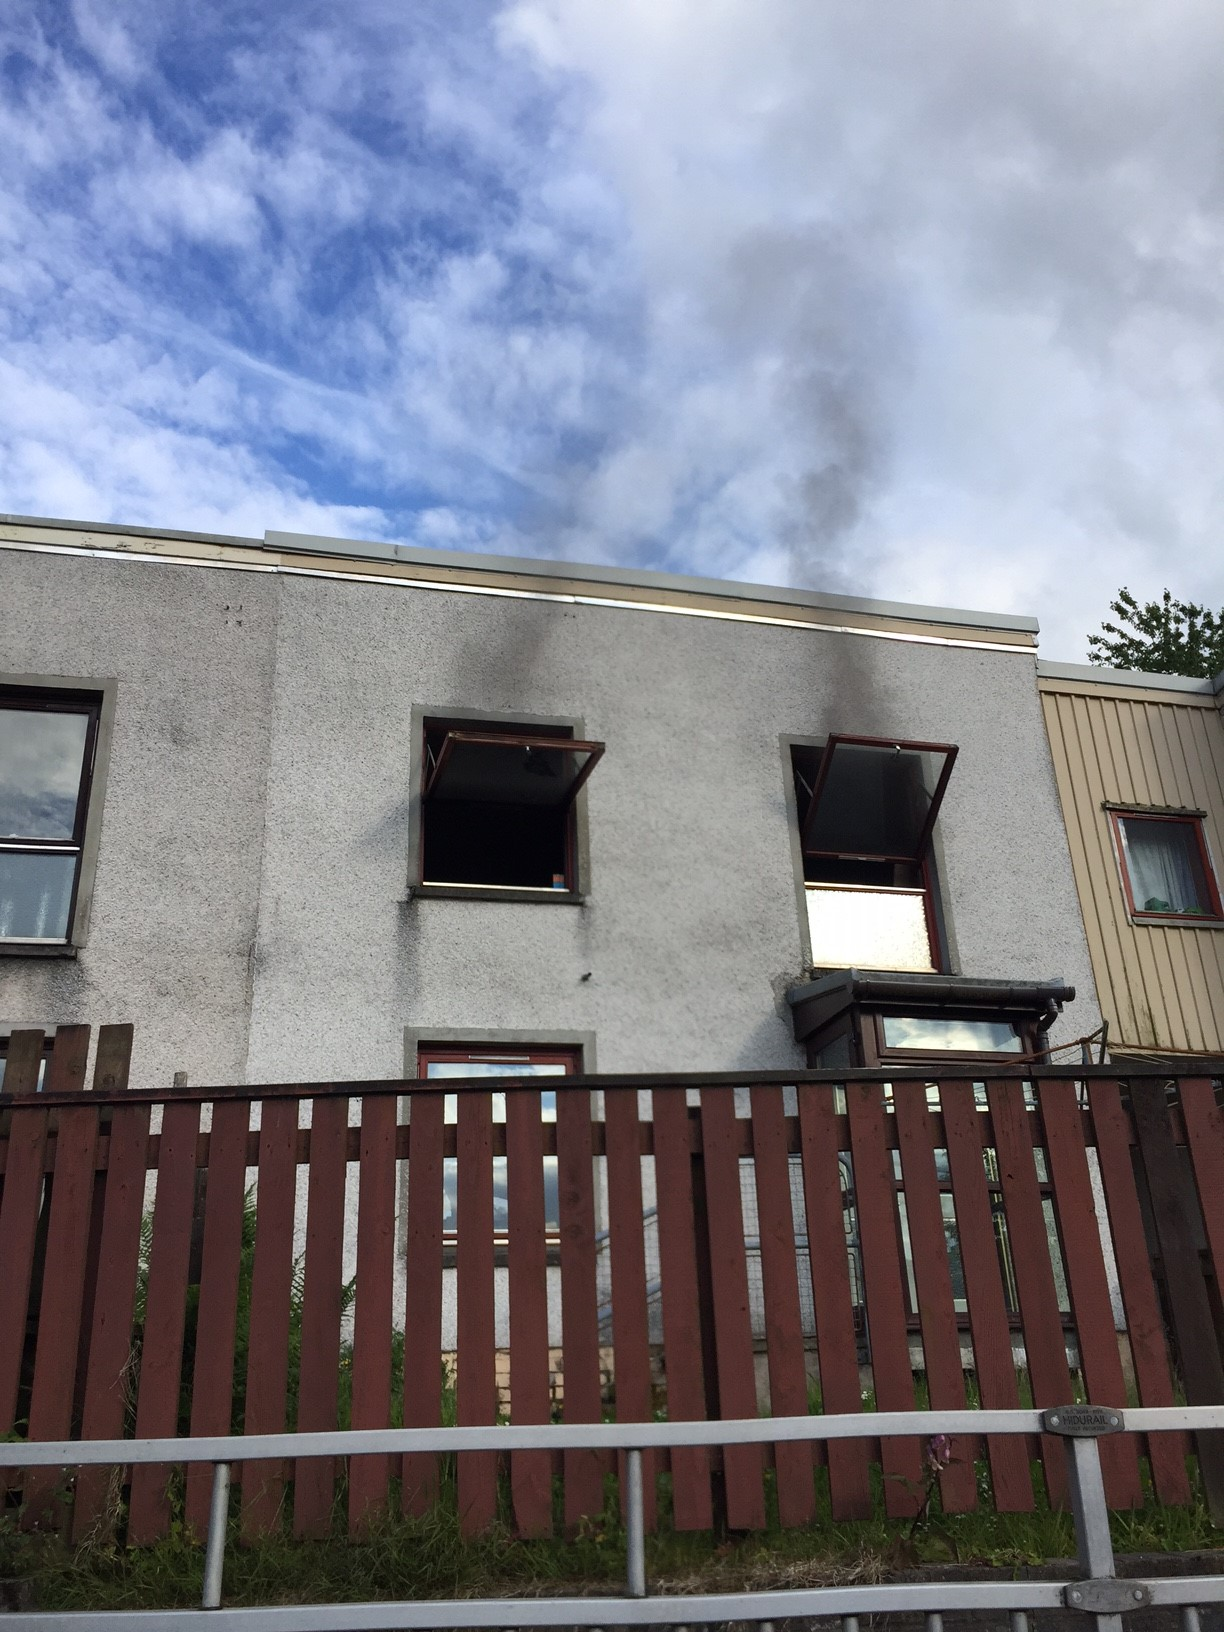 Firefighters put out house blaze in Fort William and protect surrounding homes